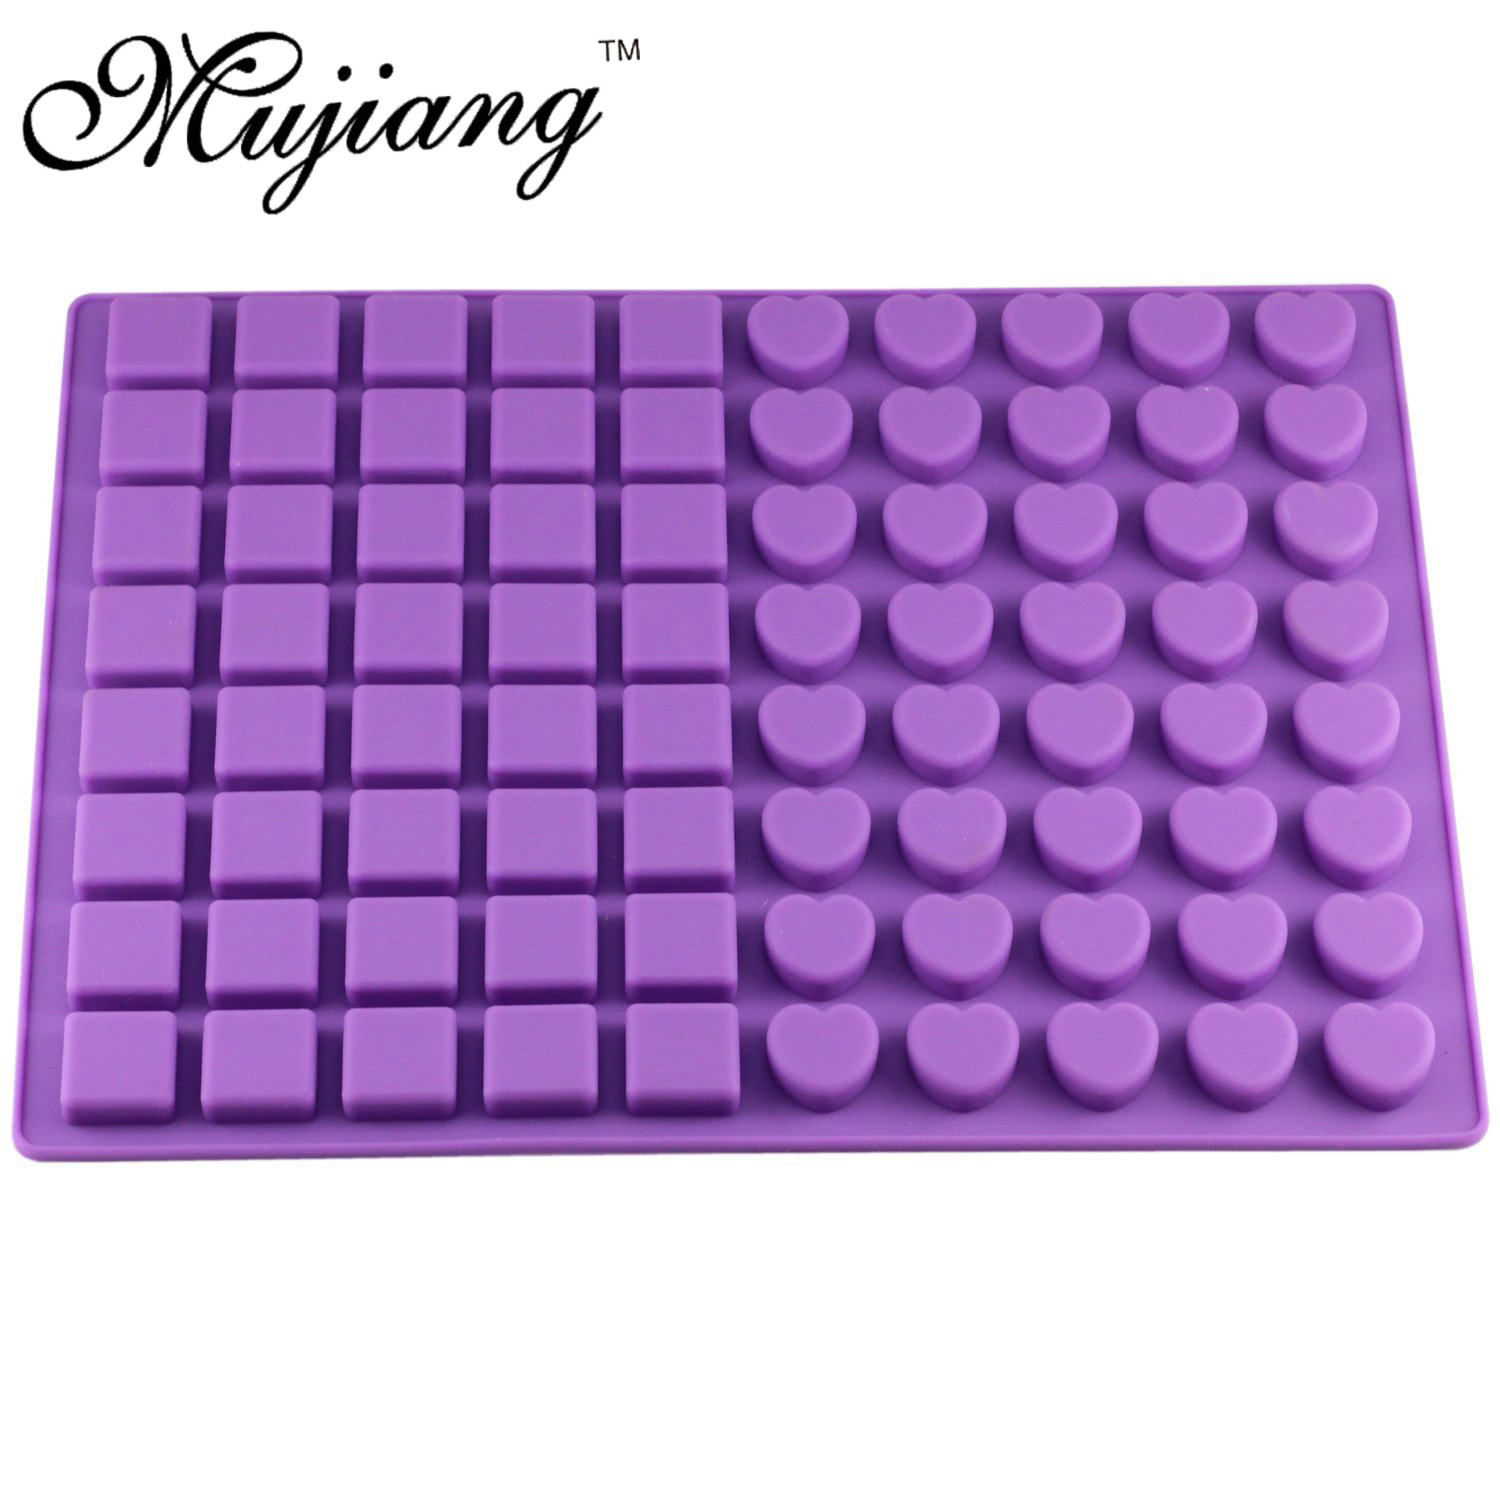 Mujiang 80 Cavity Silicone Gummy Square Heart Chocolate Mold Sugar Candy Jelly Molds Ice Tube Tray Mold Cake Decorating Tools